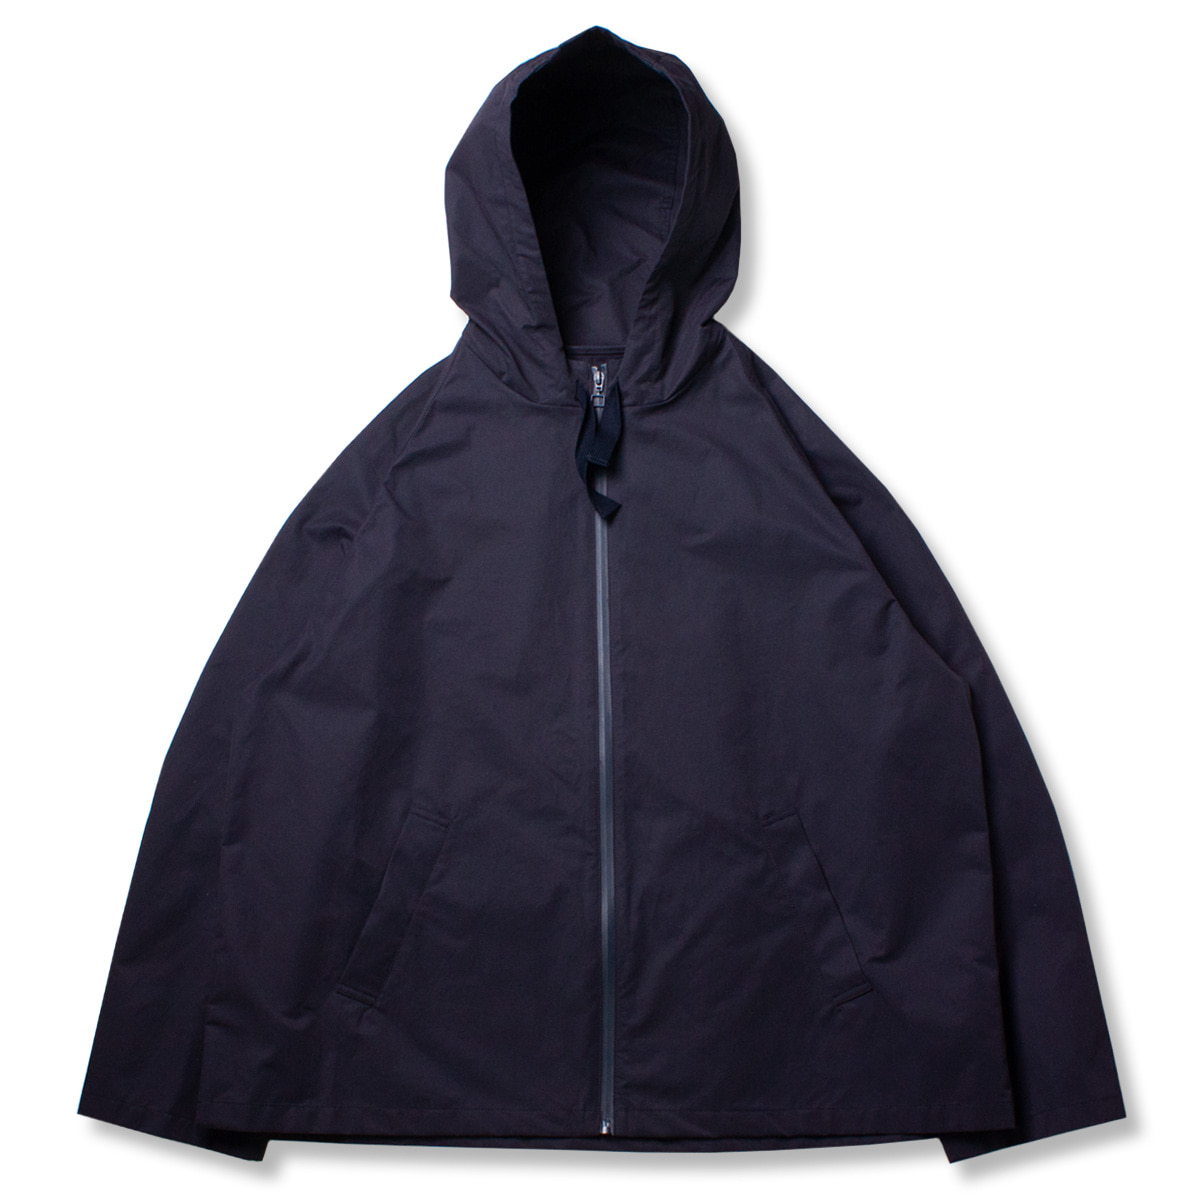 [STUDIO NICHOLSON] HOODED CROP JACKET 'DARK NAVY'